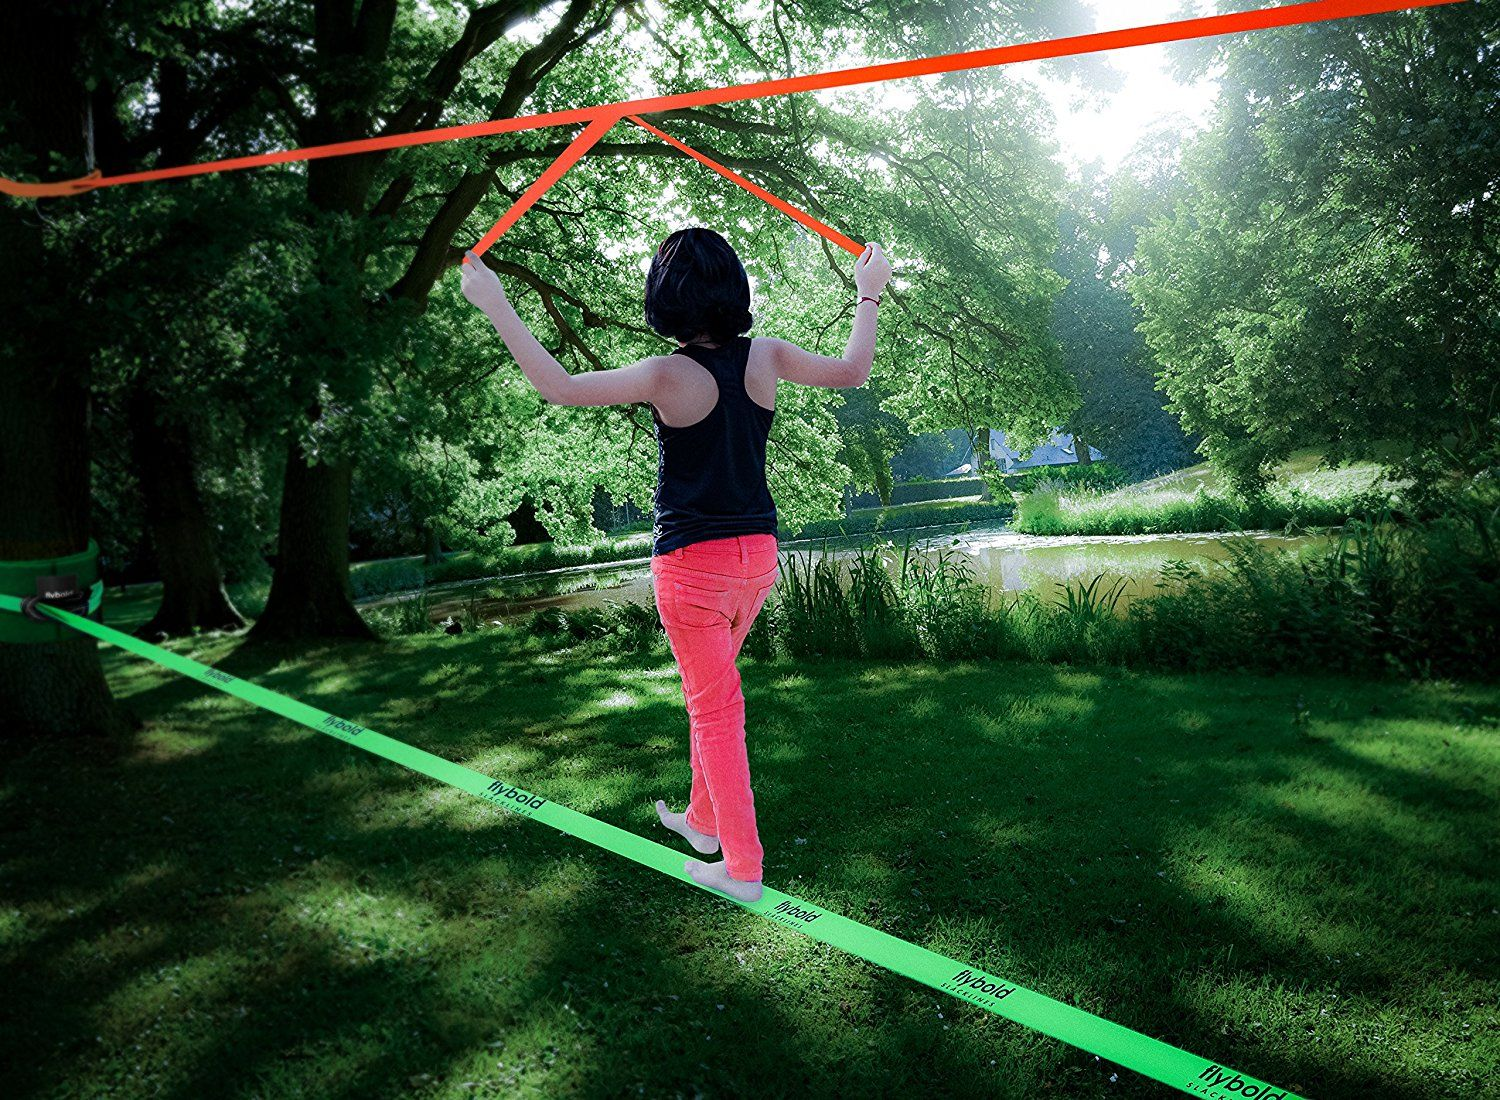 Is Slacklining Bad for Trees?